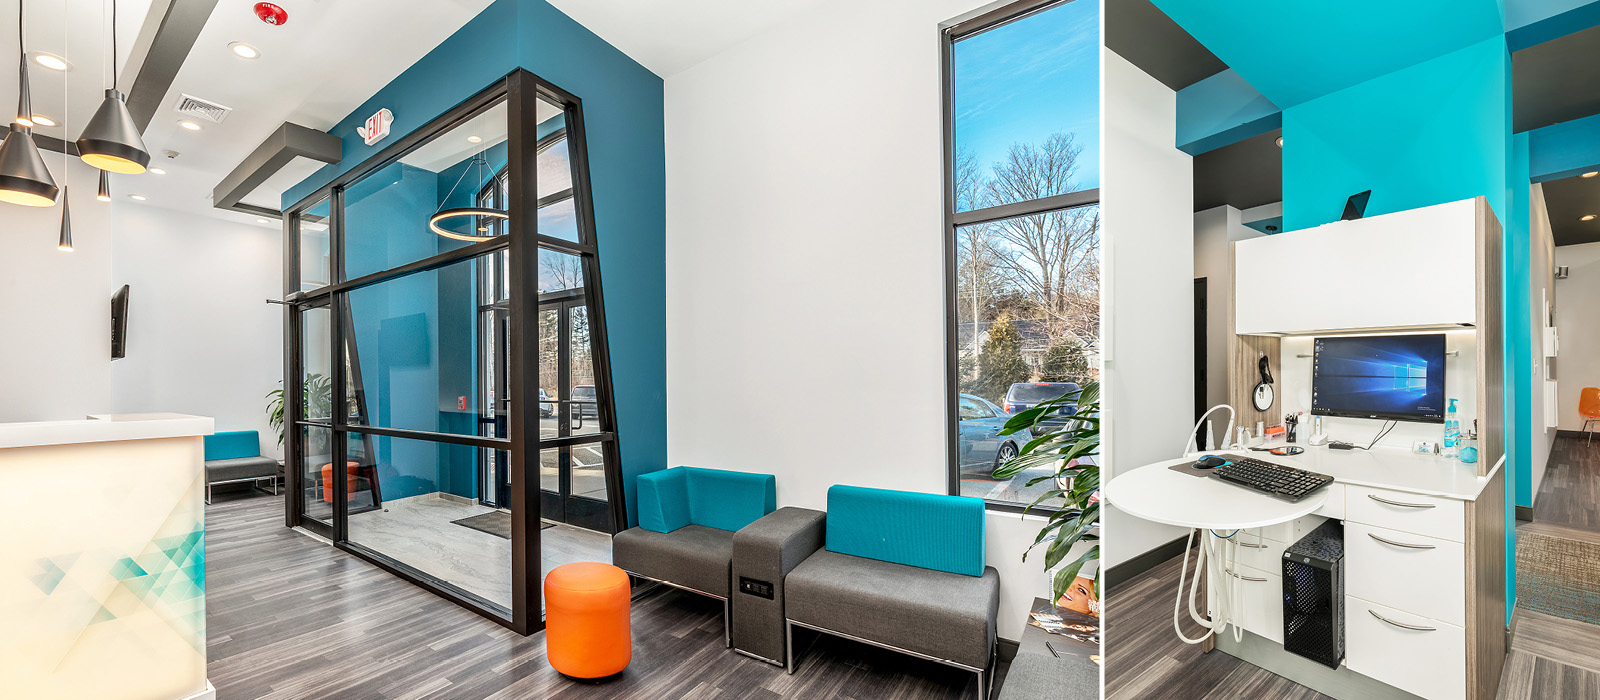 Byte Dentistry entryway and clinical workspace